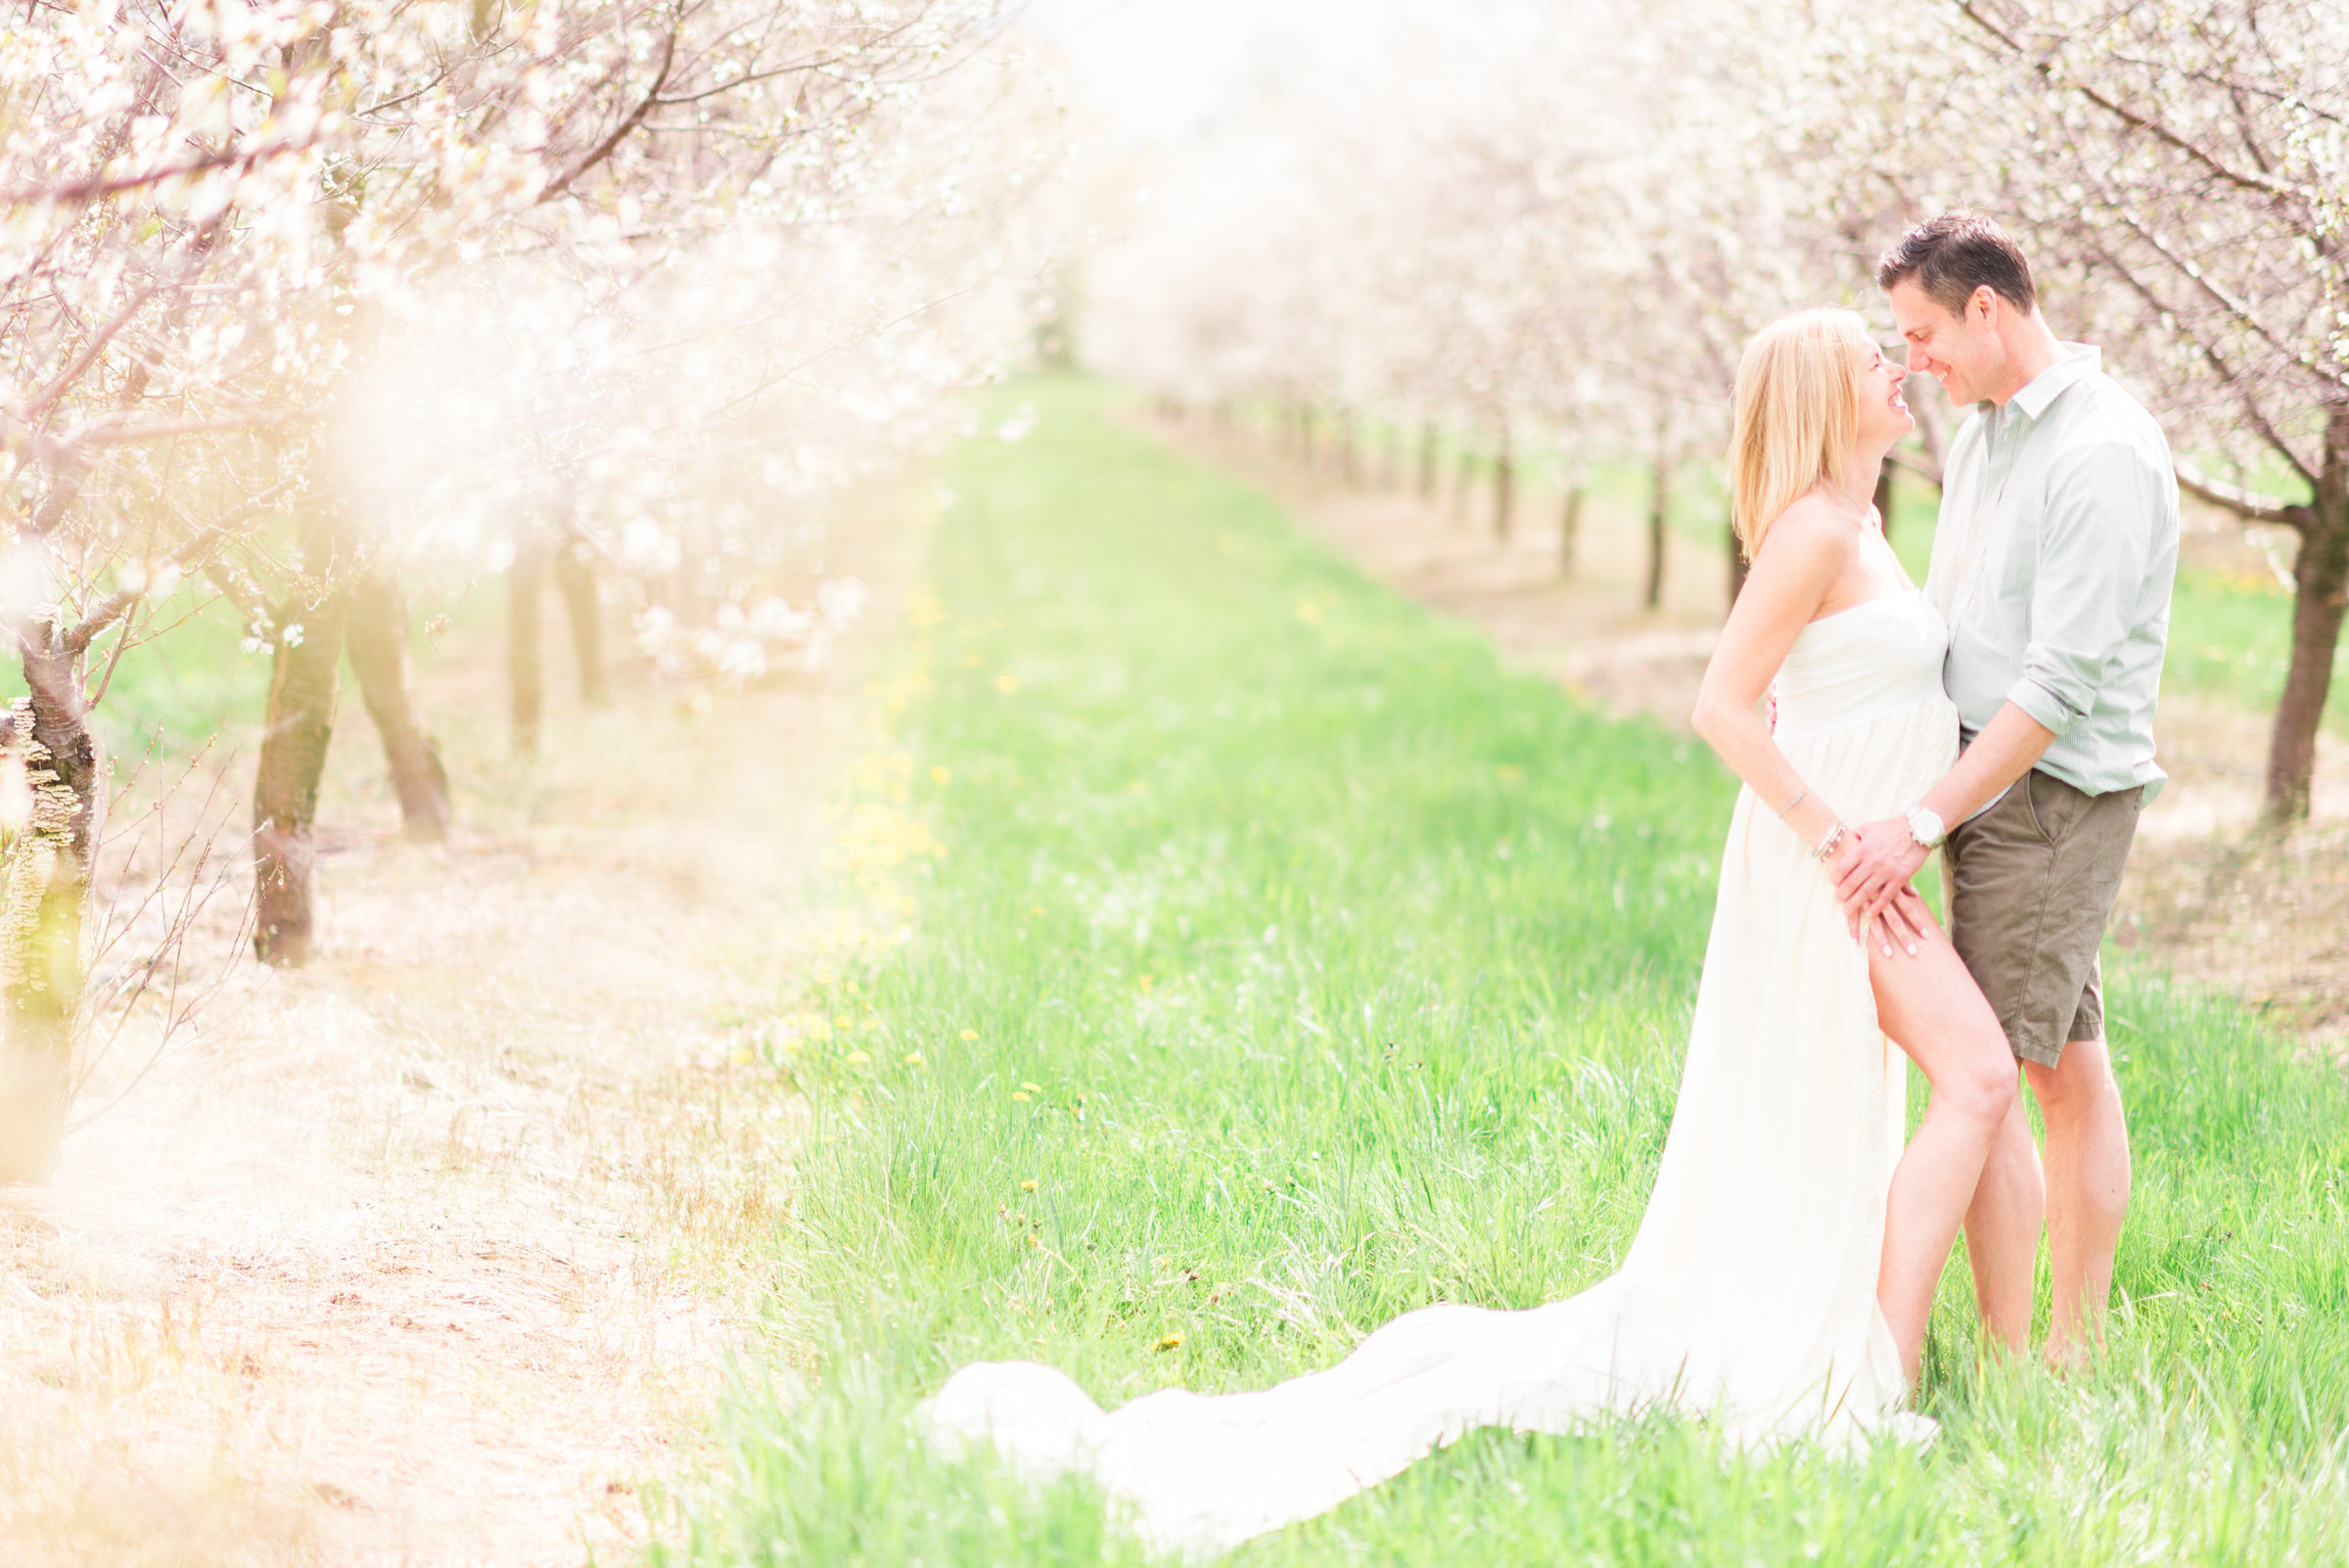 cherry-blossom-maternity-portrait-session-traverse-city-michigan-12